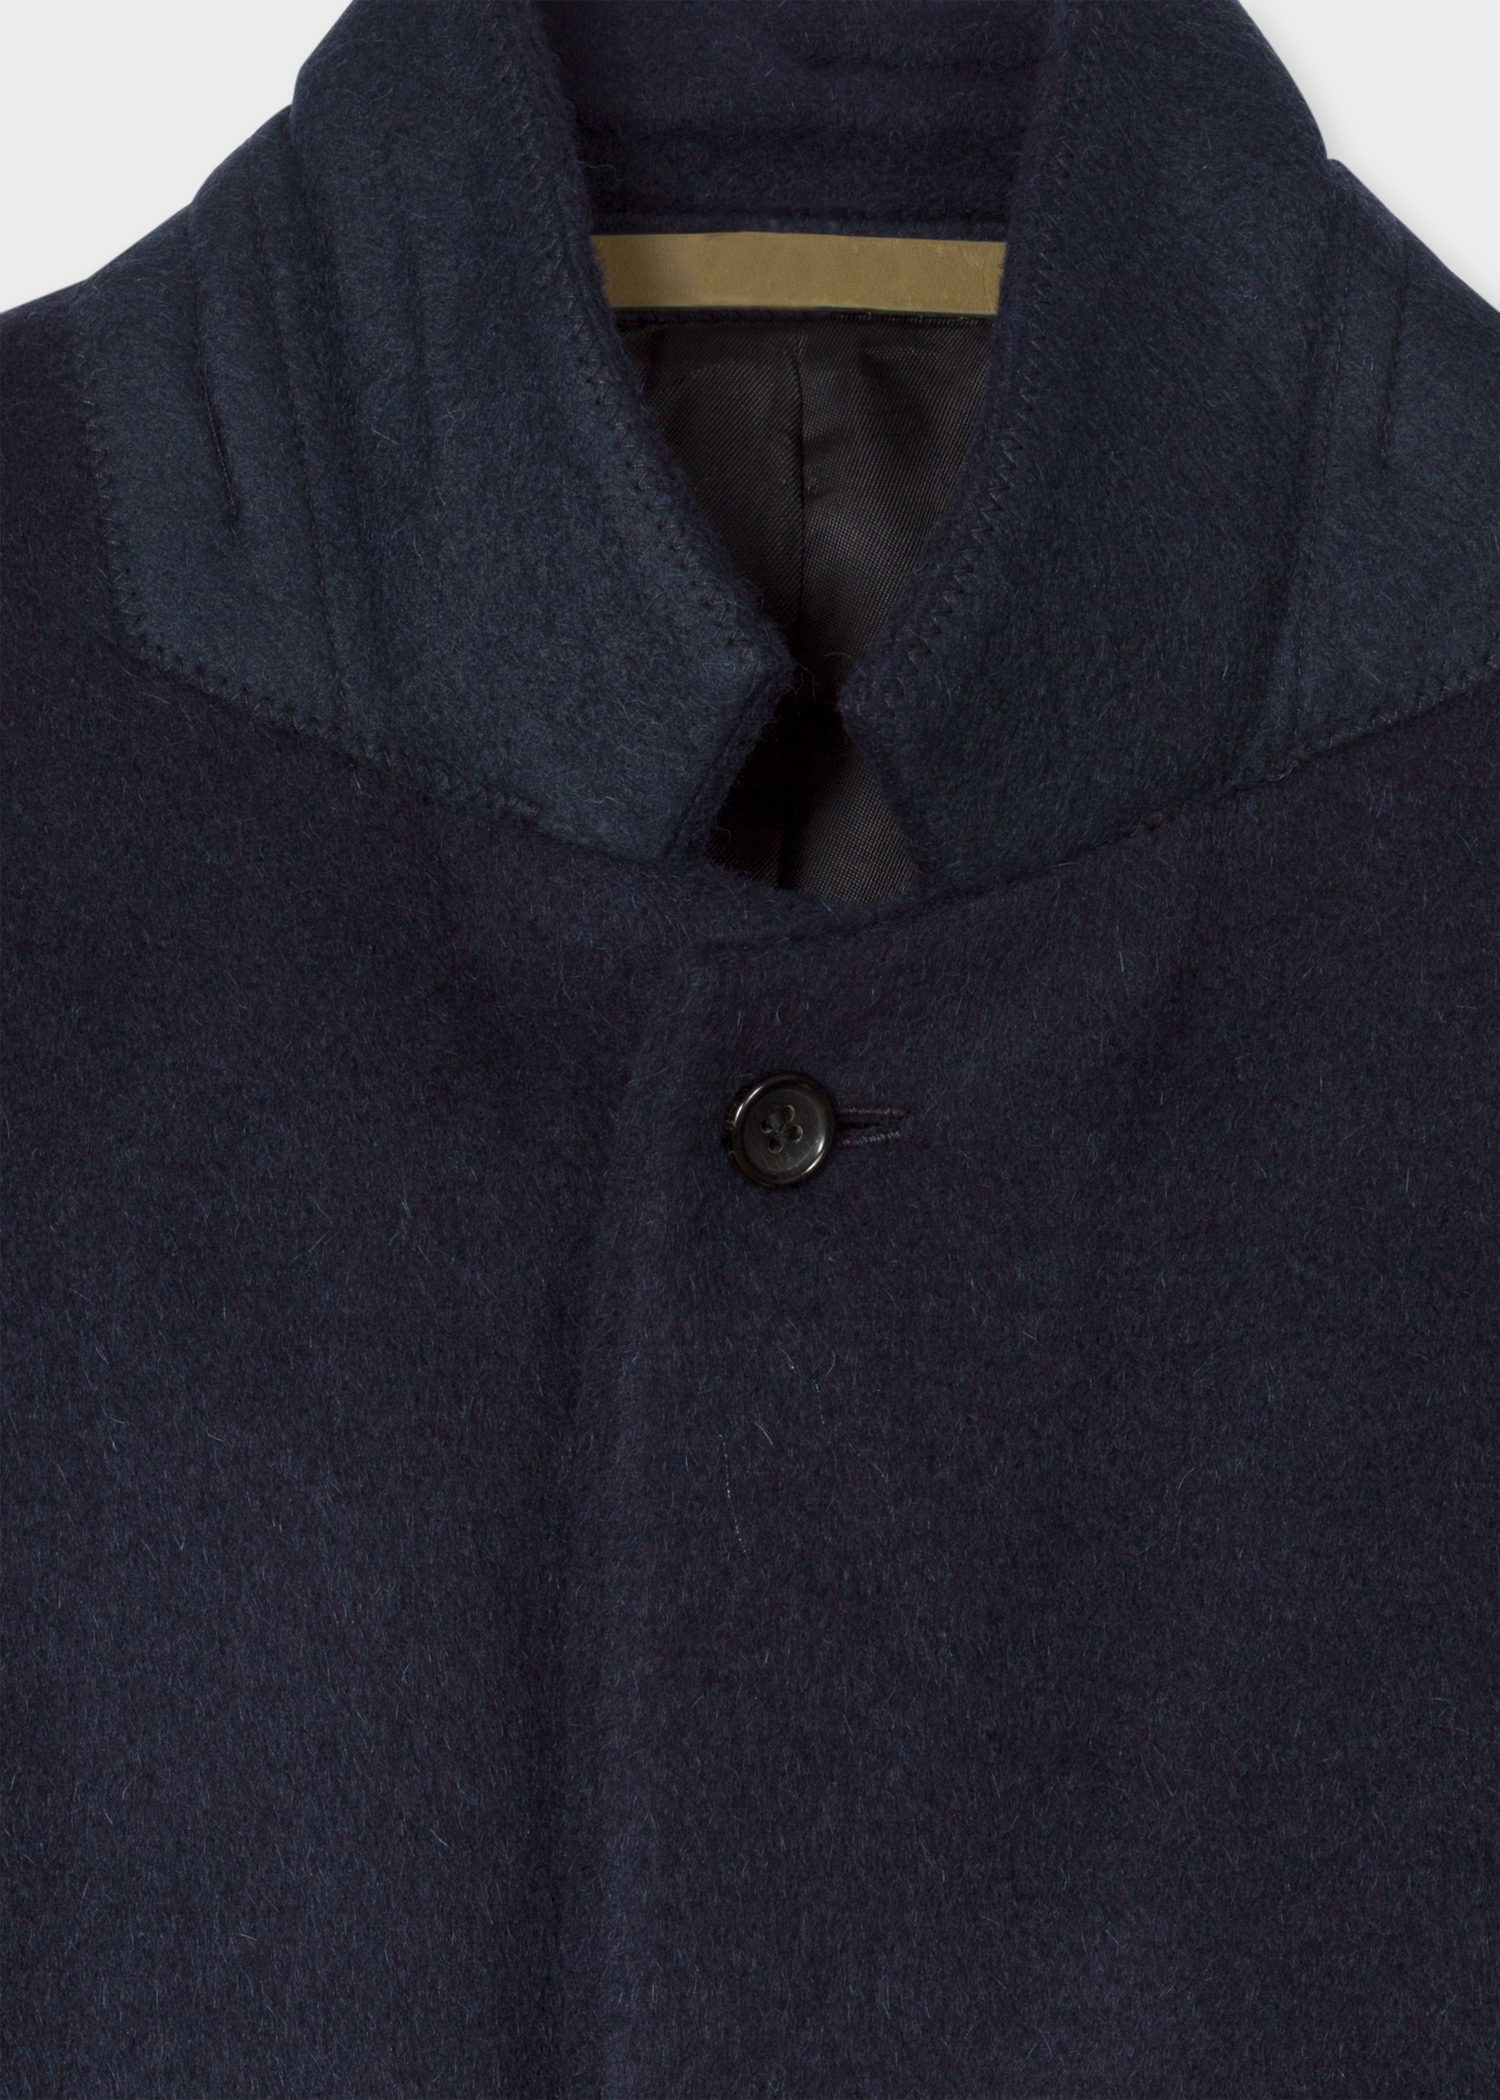 8cf84664db6 Men s Dark Navy Alpaca-Wool Blend Overcoat - Paul Smith US